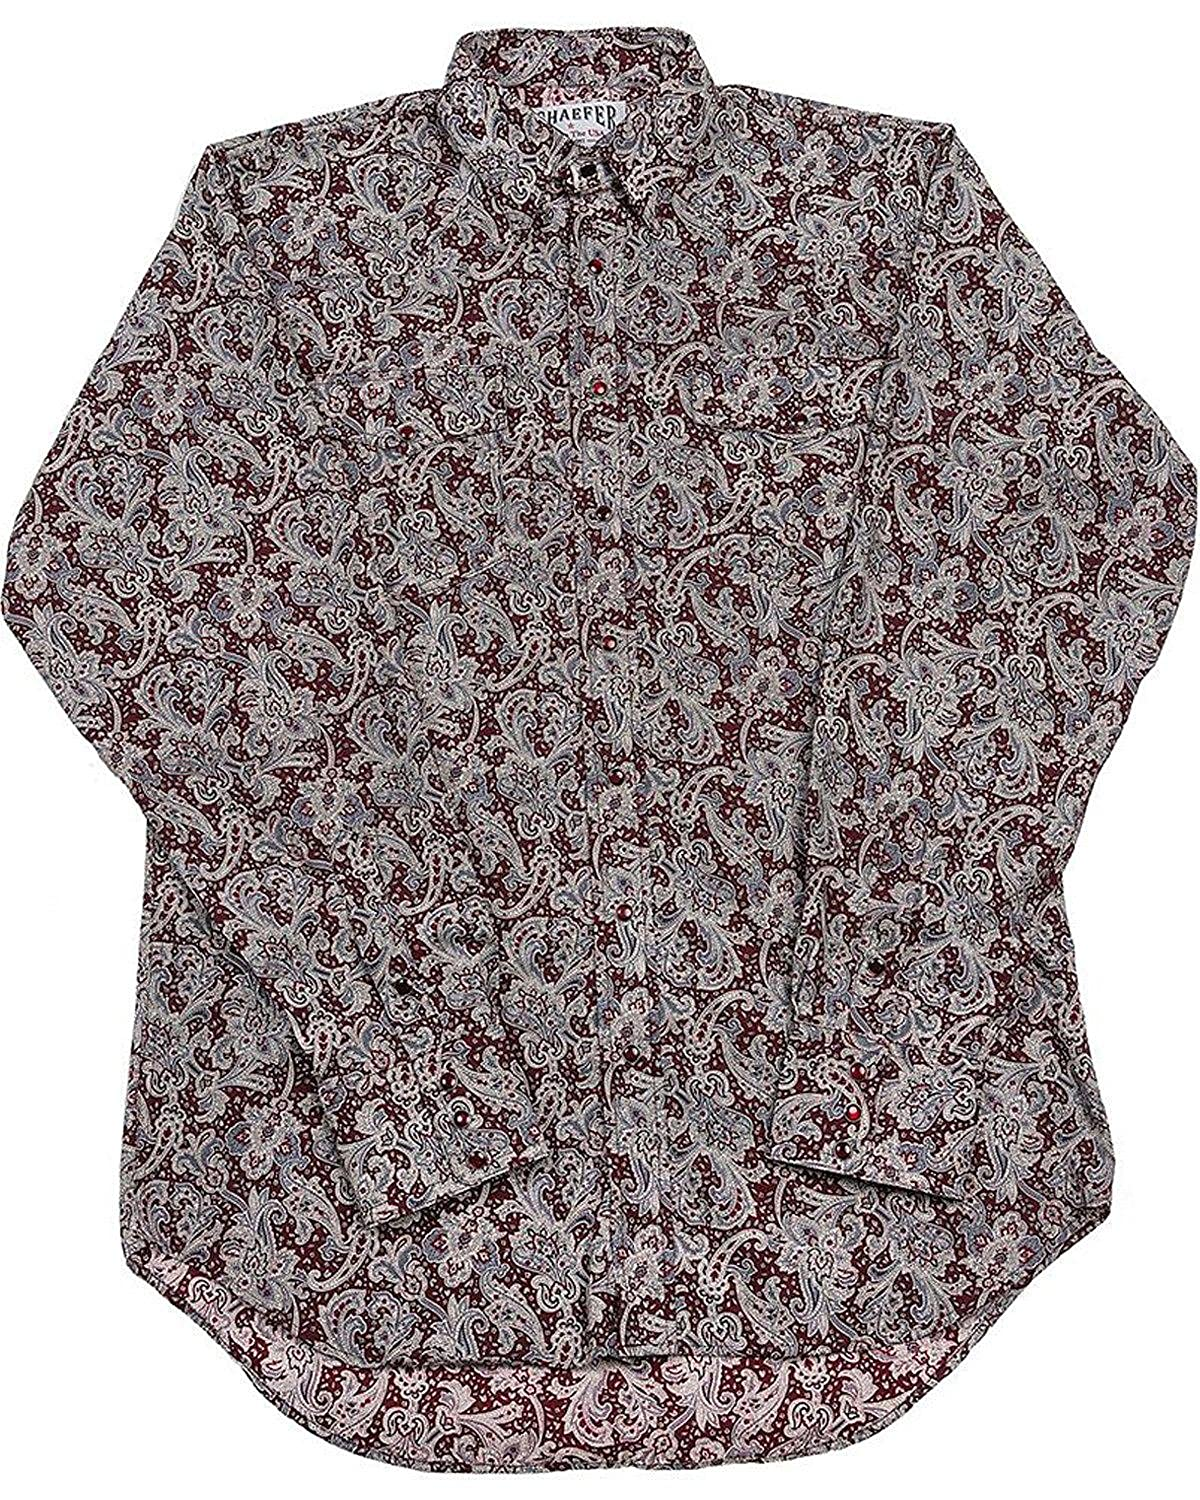 2055-By Schaefer Outfitters Mens Burgundy Frontier Paisley Western Snap Shirt